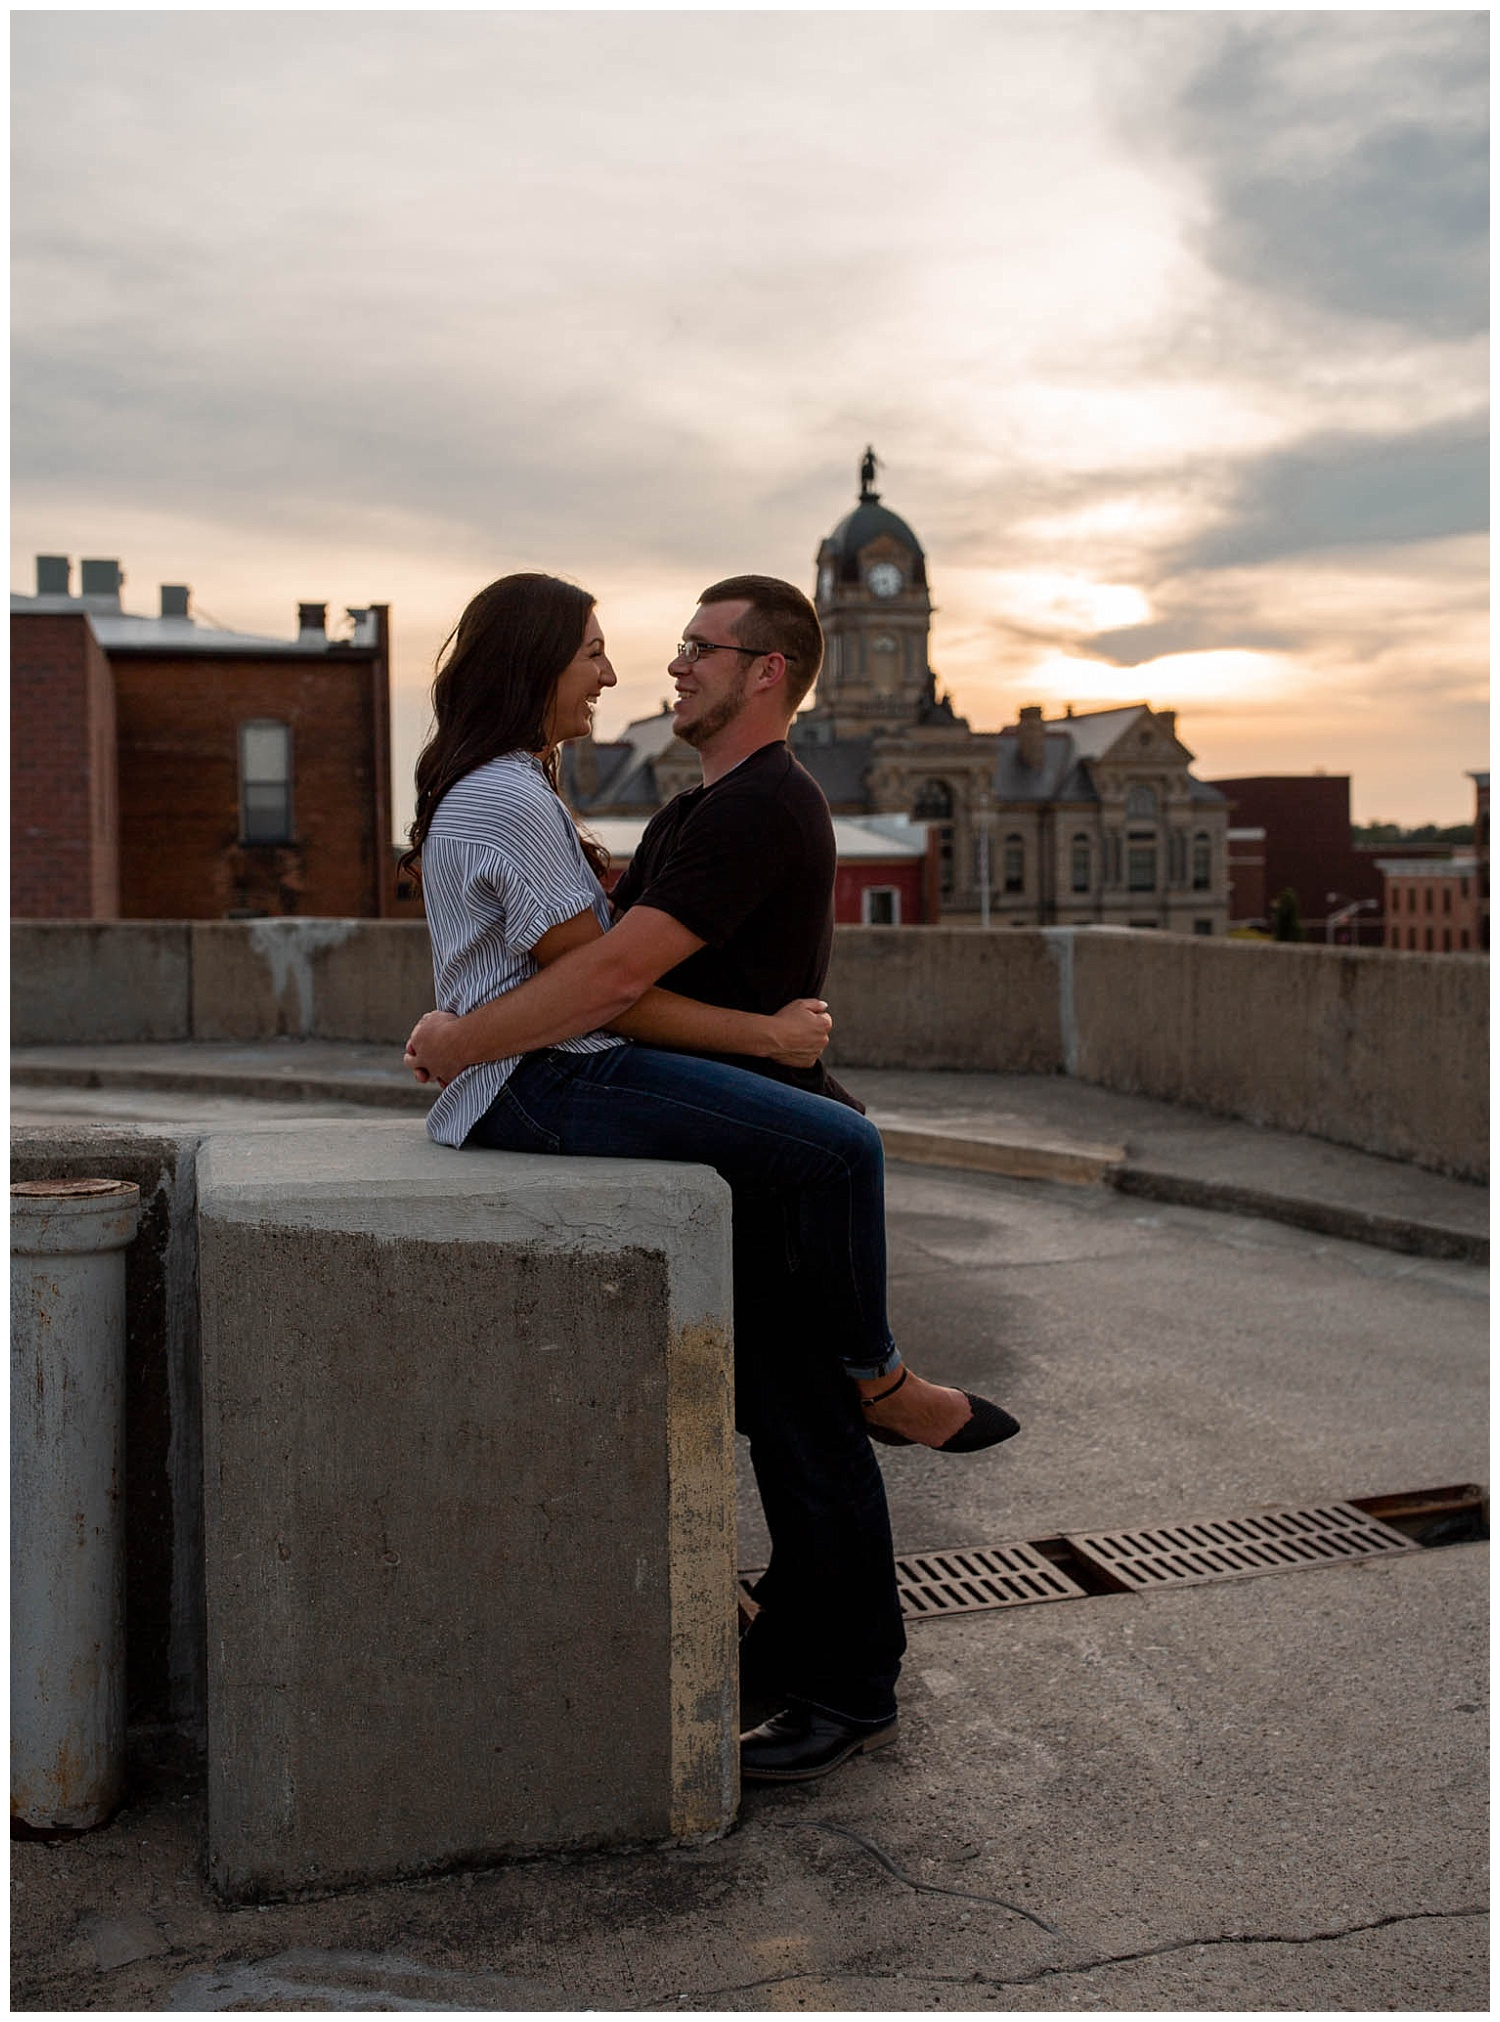 Dowtown Findlay Engagement photos. sunset parking gurage_0219.jpg